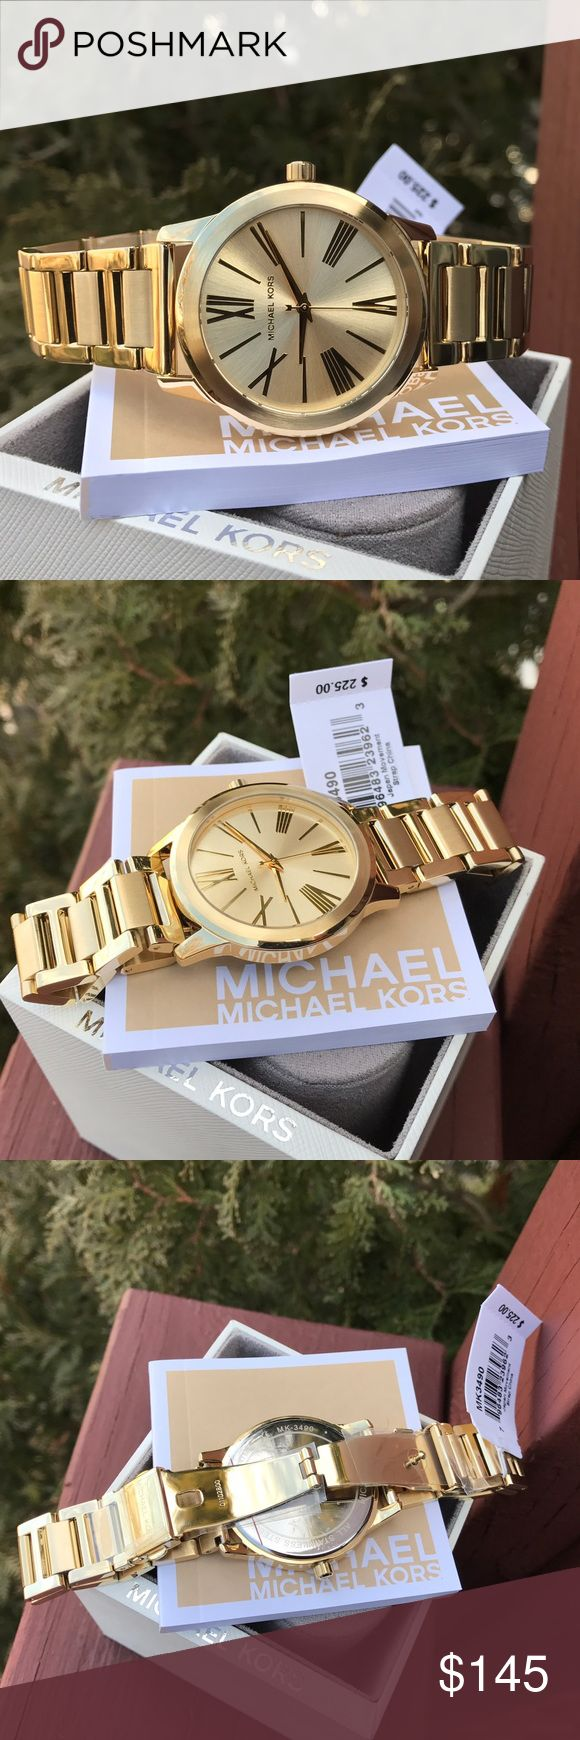 New Michael Kors Hartman MK bracelet watch MK3490 LAST 1! Guaranteed Authentic MK3490 * Model: Hartman                                                                             * Retail: $225 / Gold stainless steel band. * Gold roman engraved dial  * New with Michael Kors watch case and owners booklet included  * 38mm  * 5 ATM  * UPC: 796483239623 * WHAT A BEAUTY!  * No trades. Buy now or offer only. Shipped same business day Michael Kors Accessories Watches